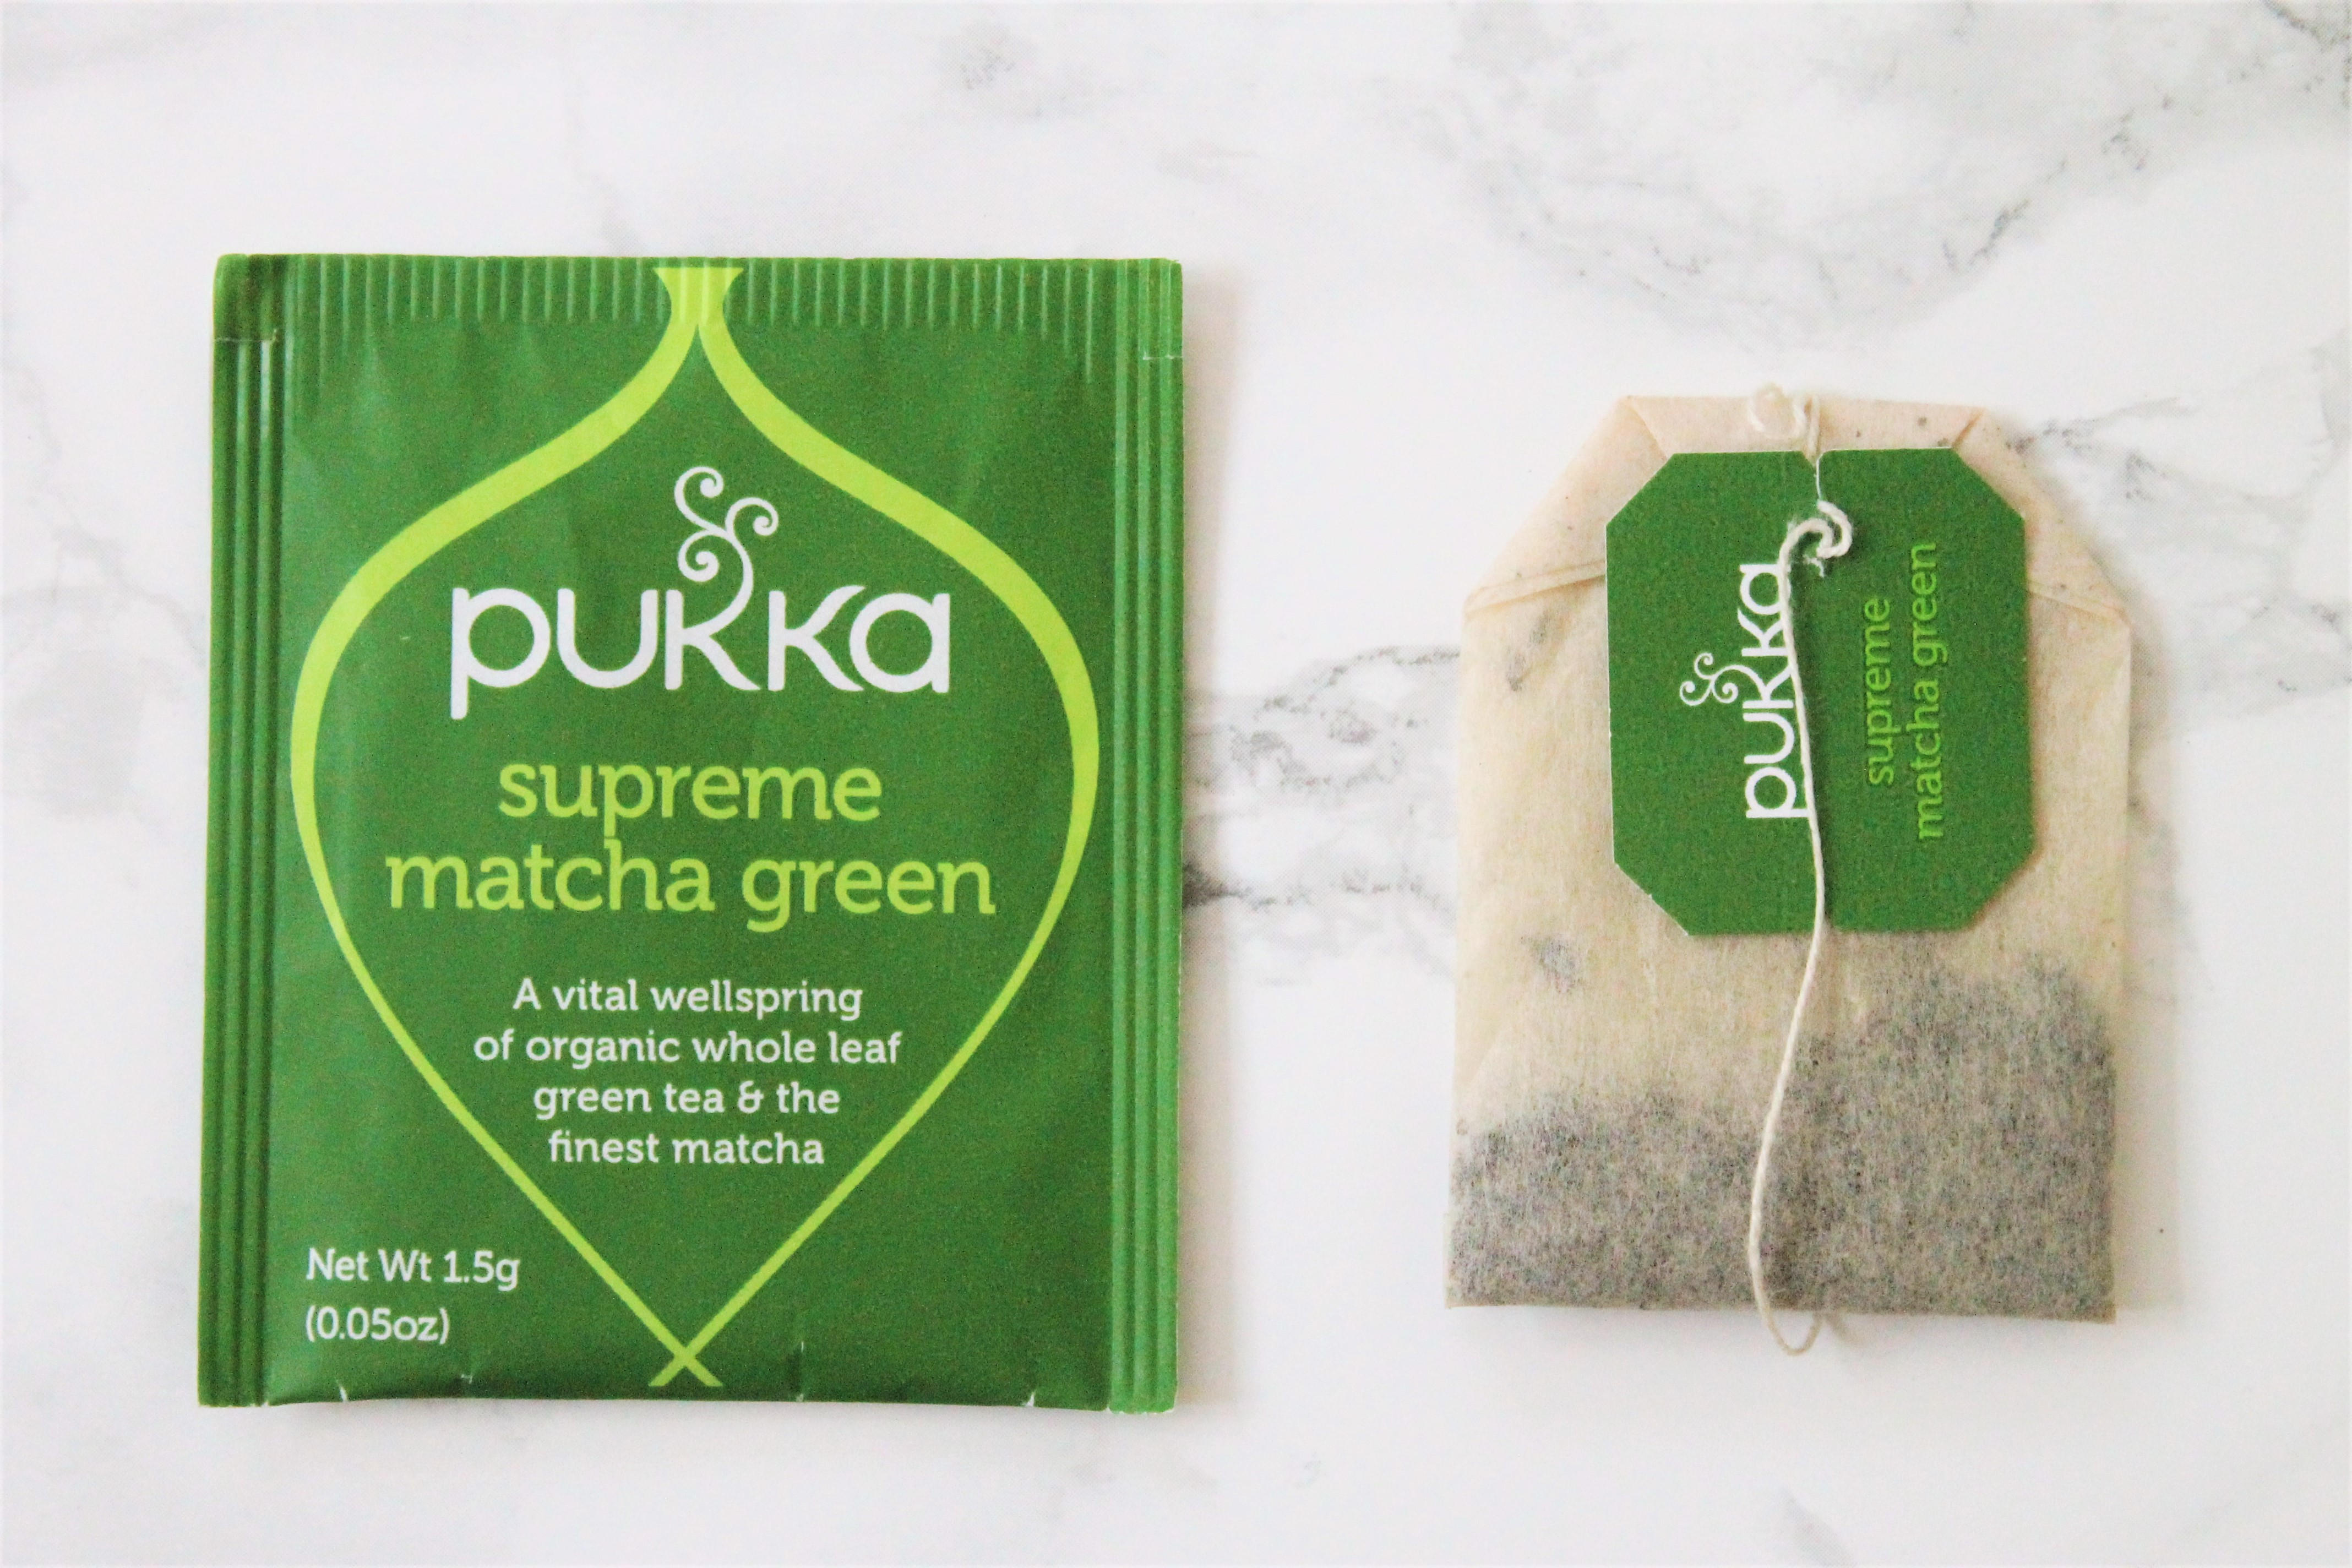 pukka supreme matcha green tea bags